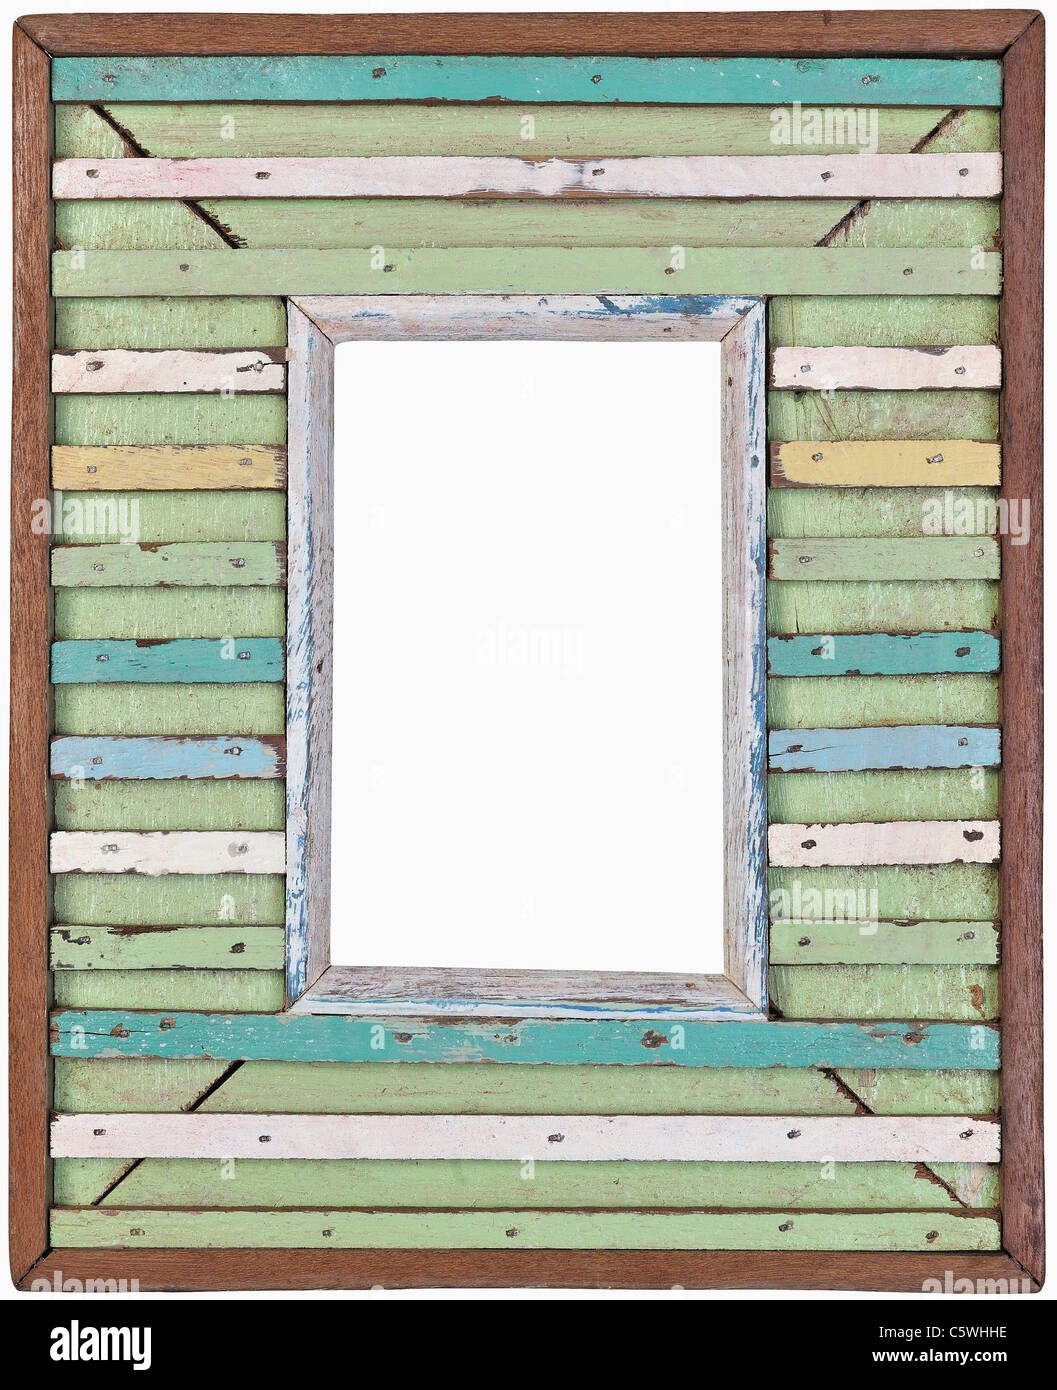 Plain Wood Frame Stockfotos & Plain Wood Frame Bilder - Alamy